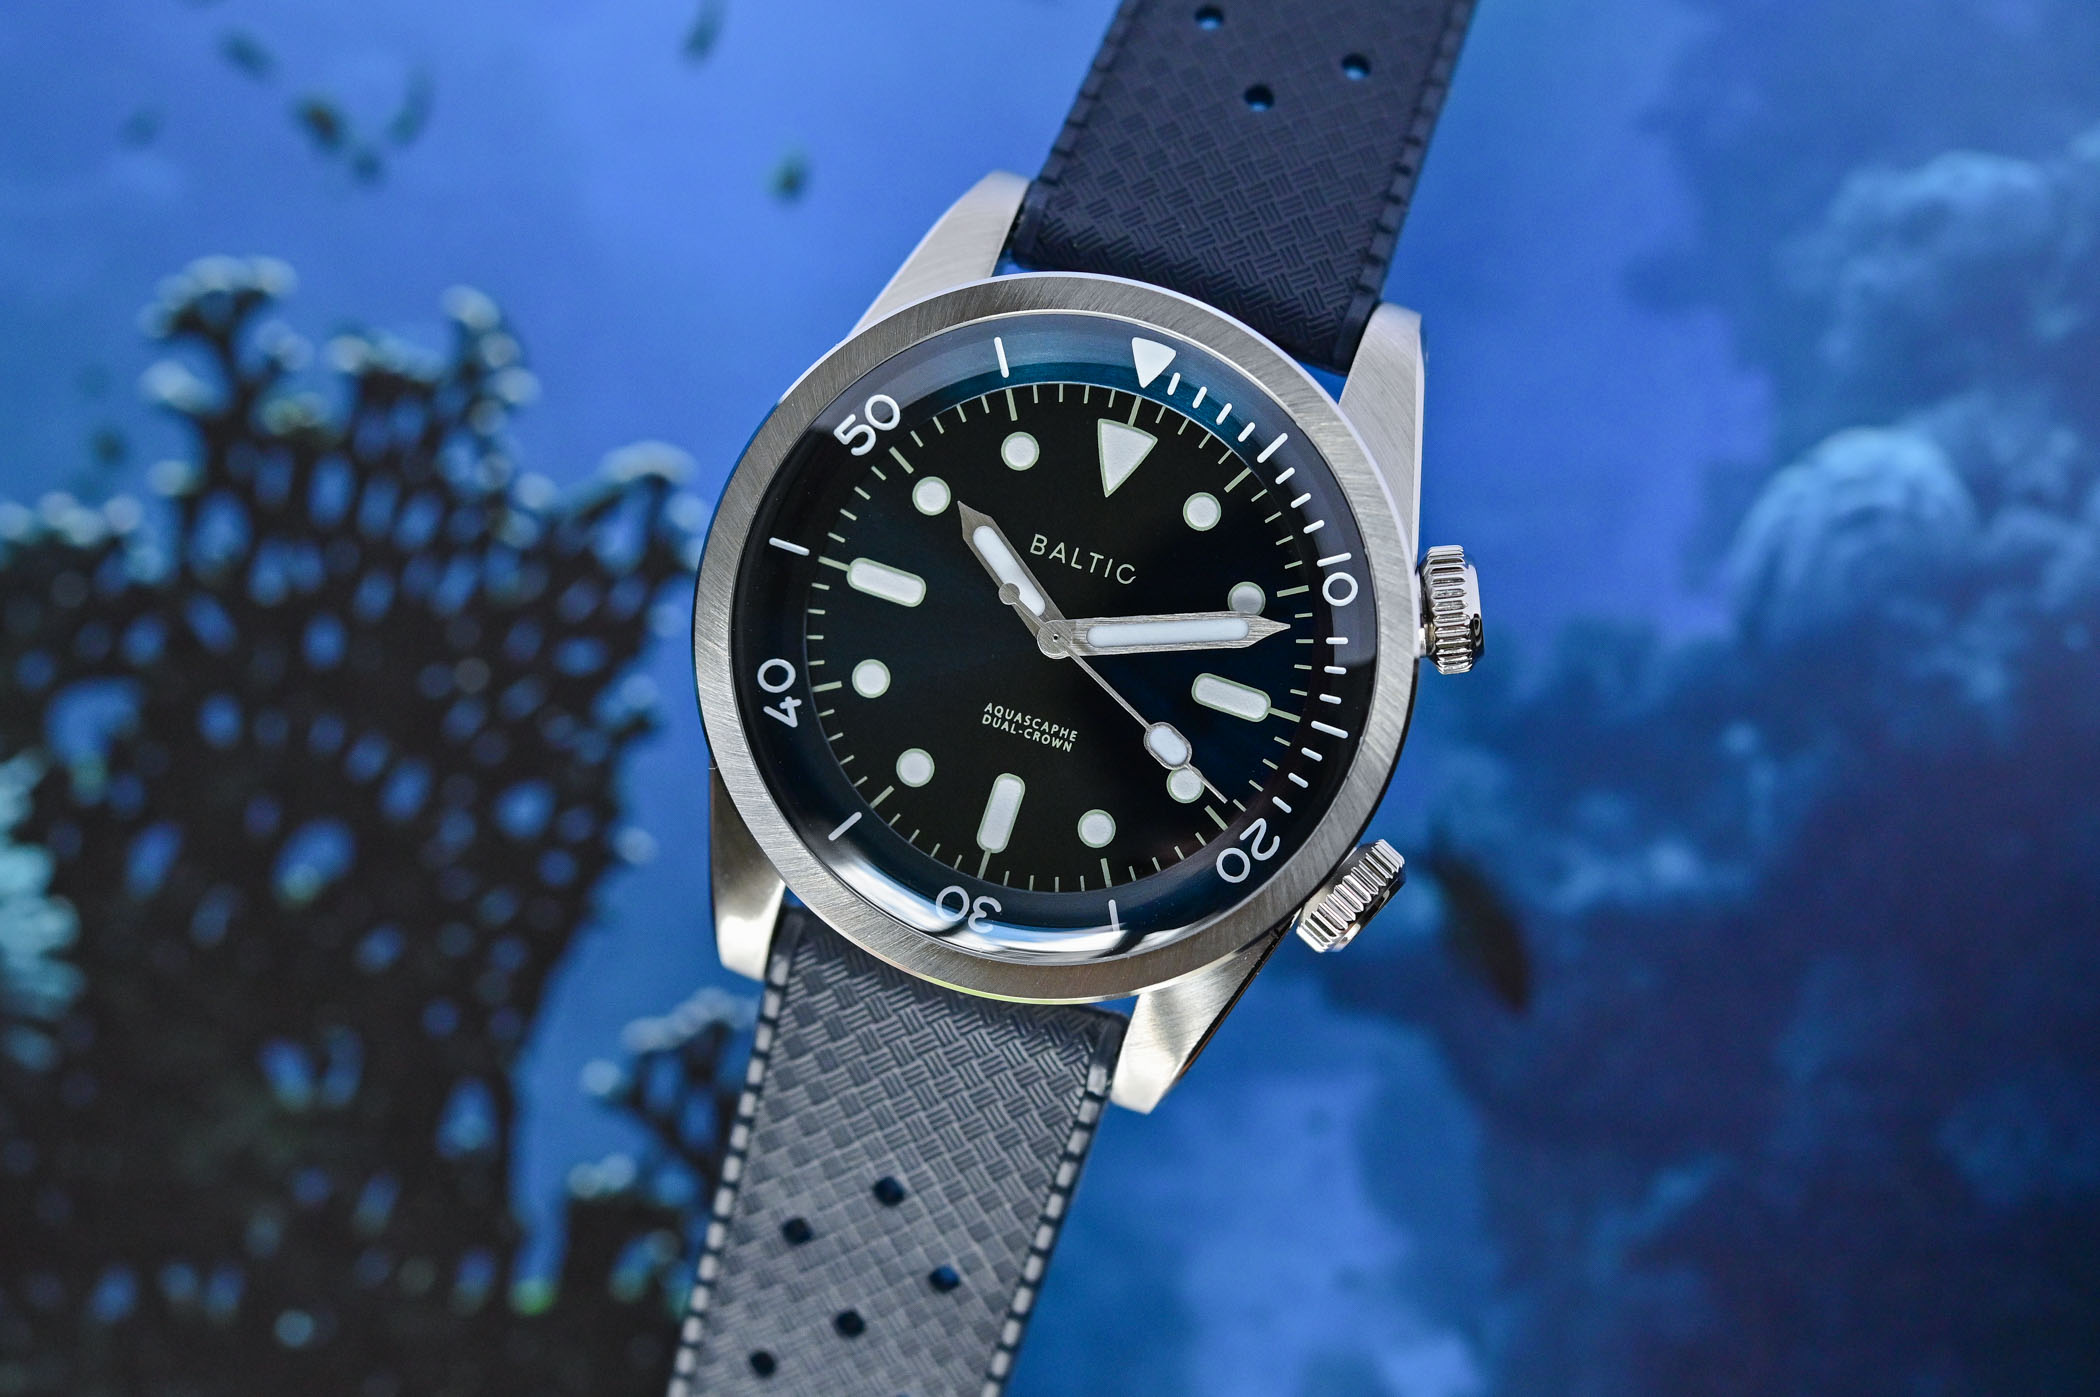 Baltic Aquascaphe Dual-Crown - Hands-On Review, Price